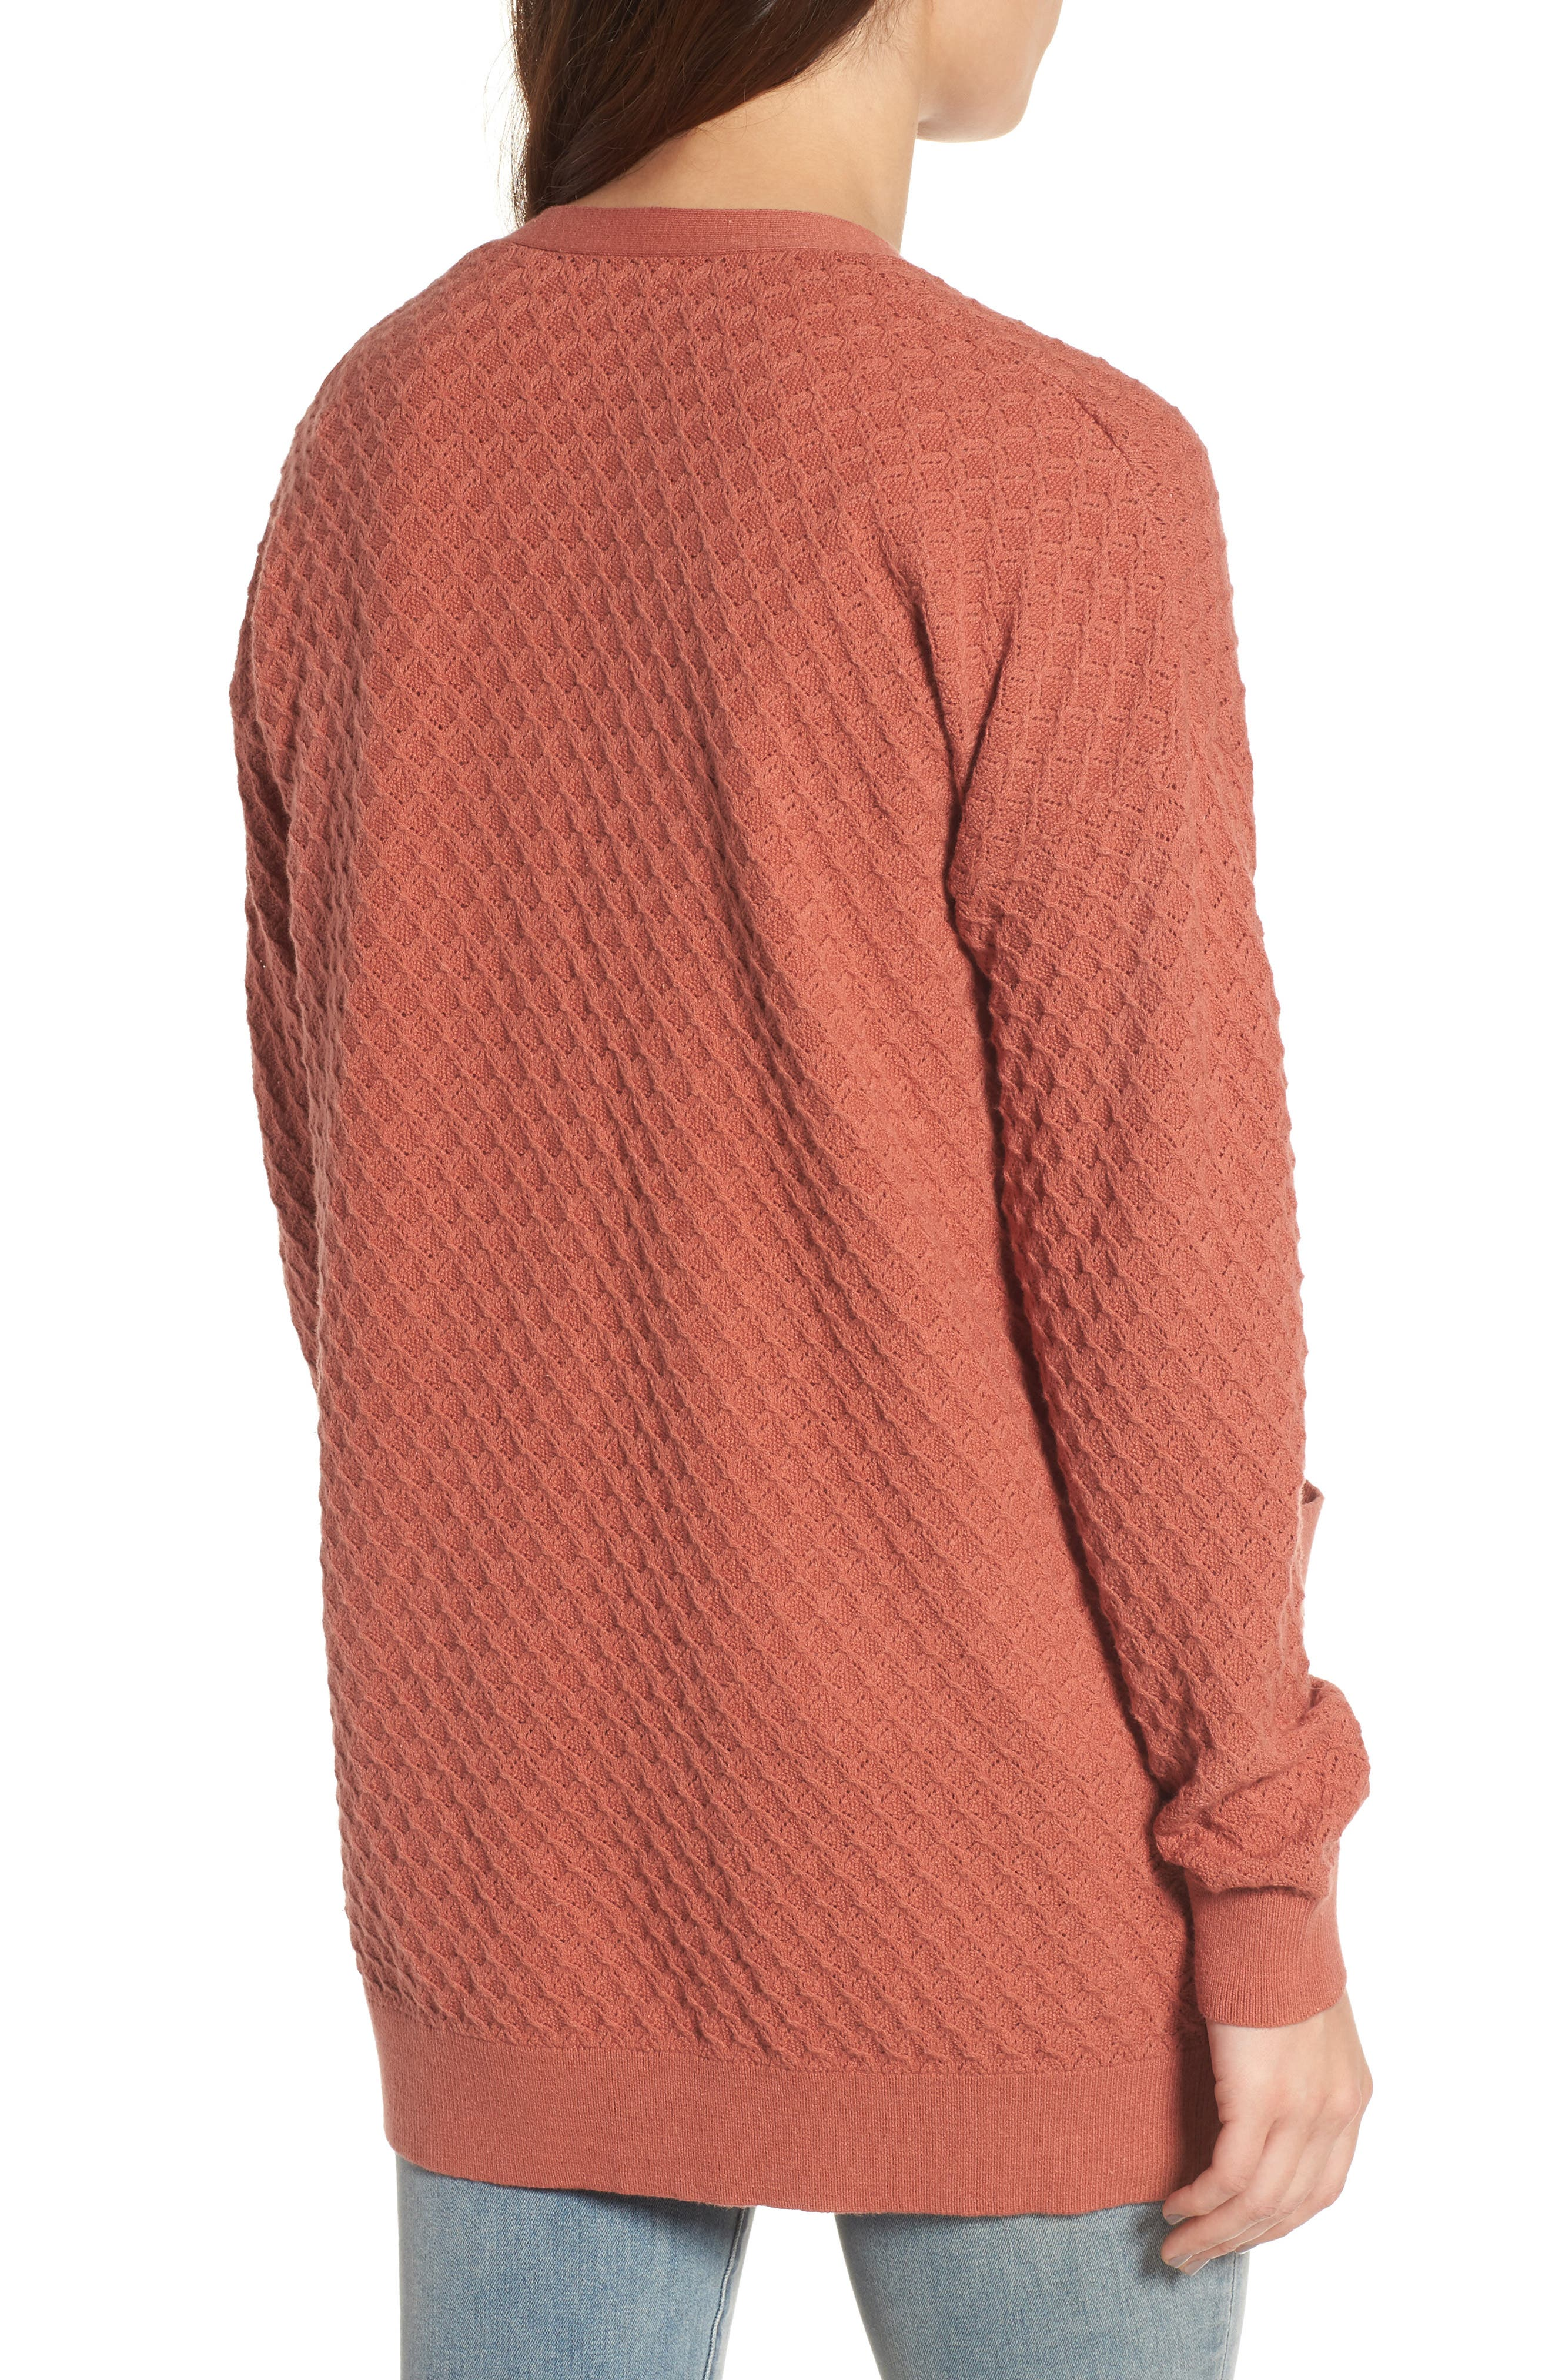 Pointelle Cardigan Sweater,                             Alternate thumbnail 8, color,